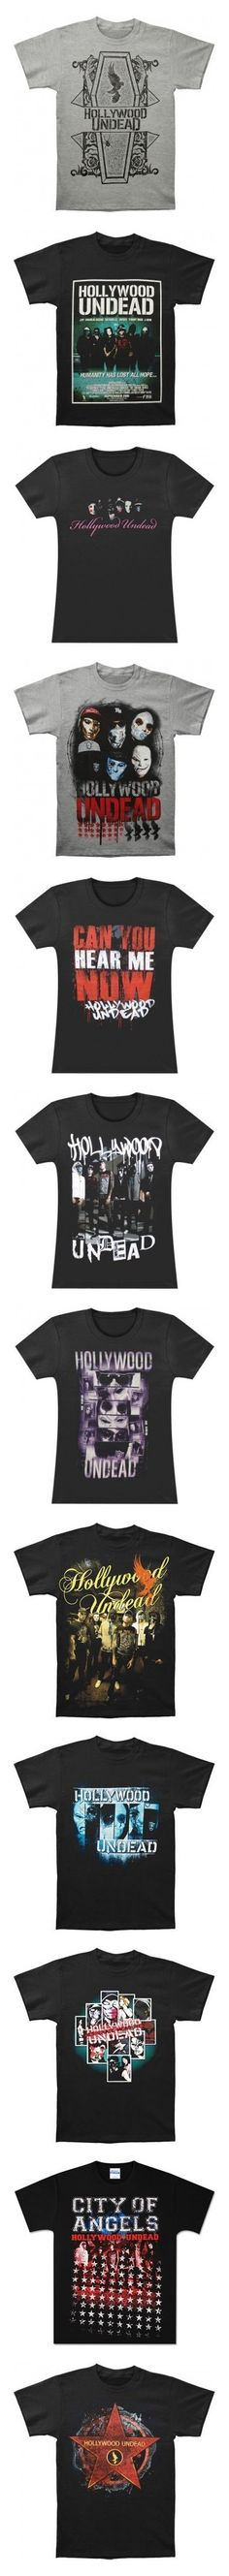 """""""Hollywood Undead"""" by xxprincesskairi123xx ❤ liked on Polyvore featuring tops, t-shirts, flower top, bird print top, black t shirt, bird t shirts, black top, black star t shirt, star tee and shirts"""